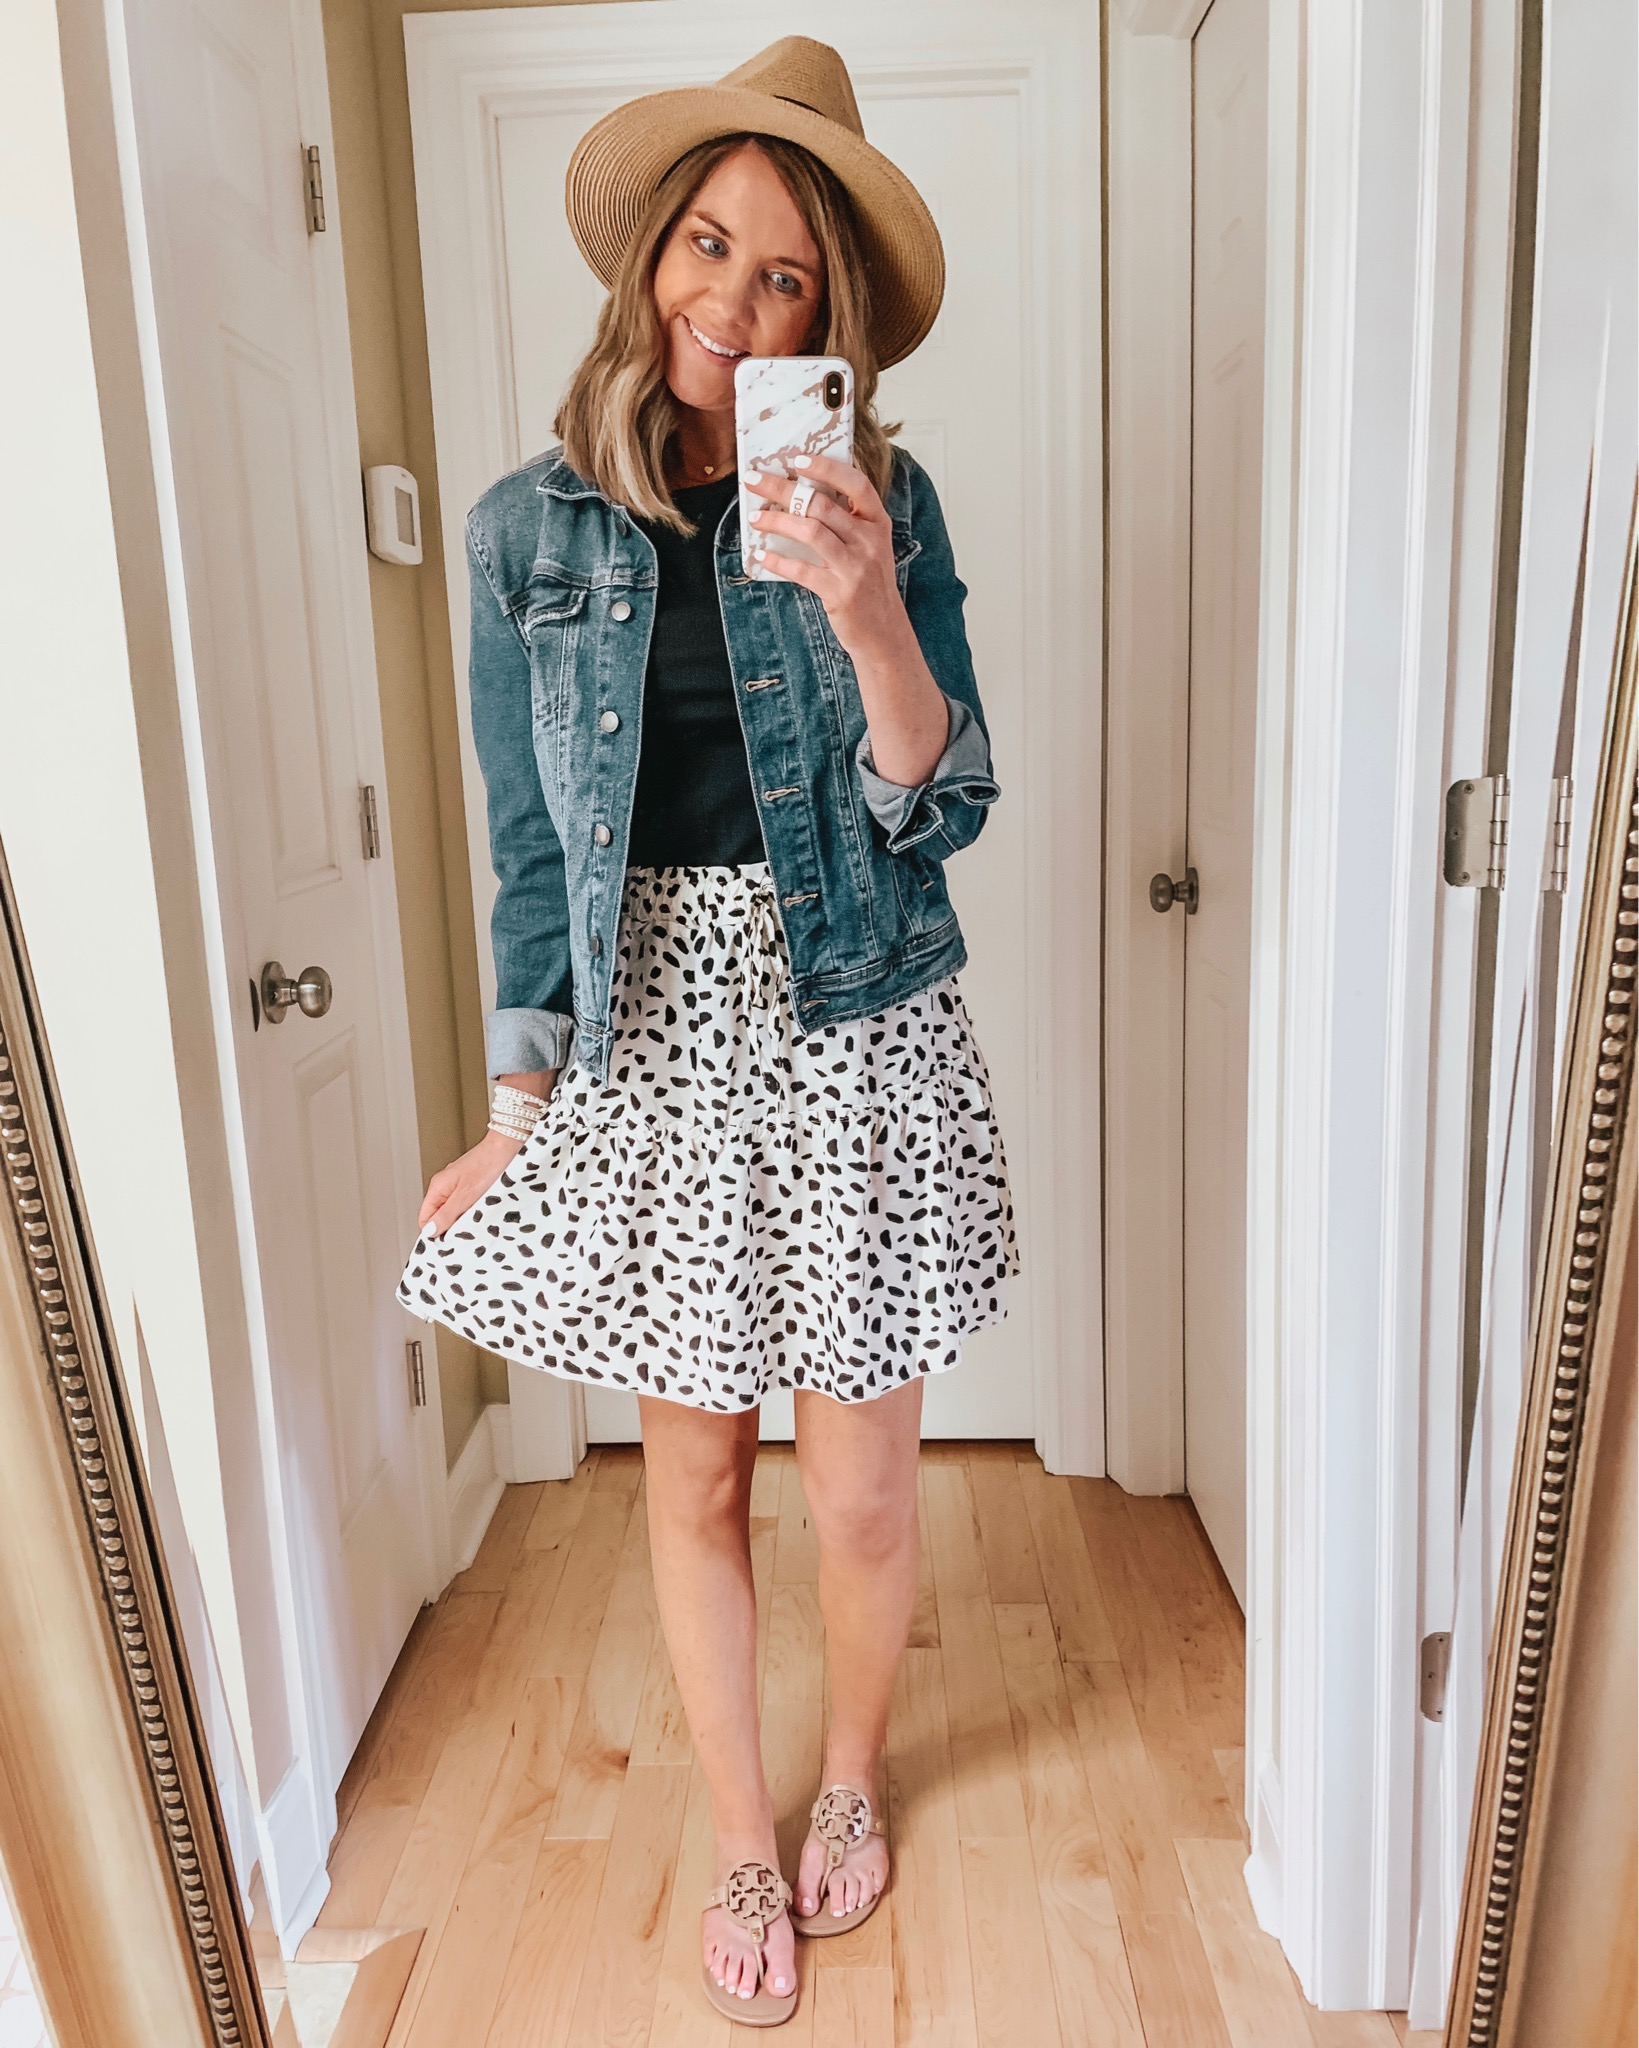 versatile dresses and skirts, how to shop social media, feminine mini skirt outfit, denim jacket pink, mules, Amazon fashion, tiered mini skirt